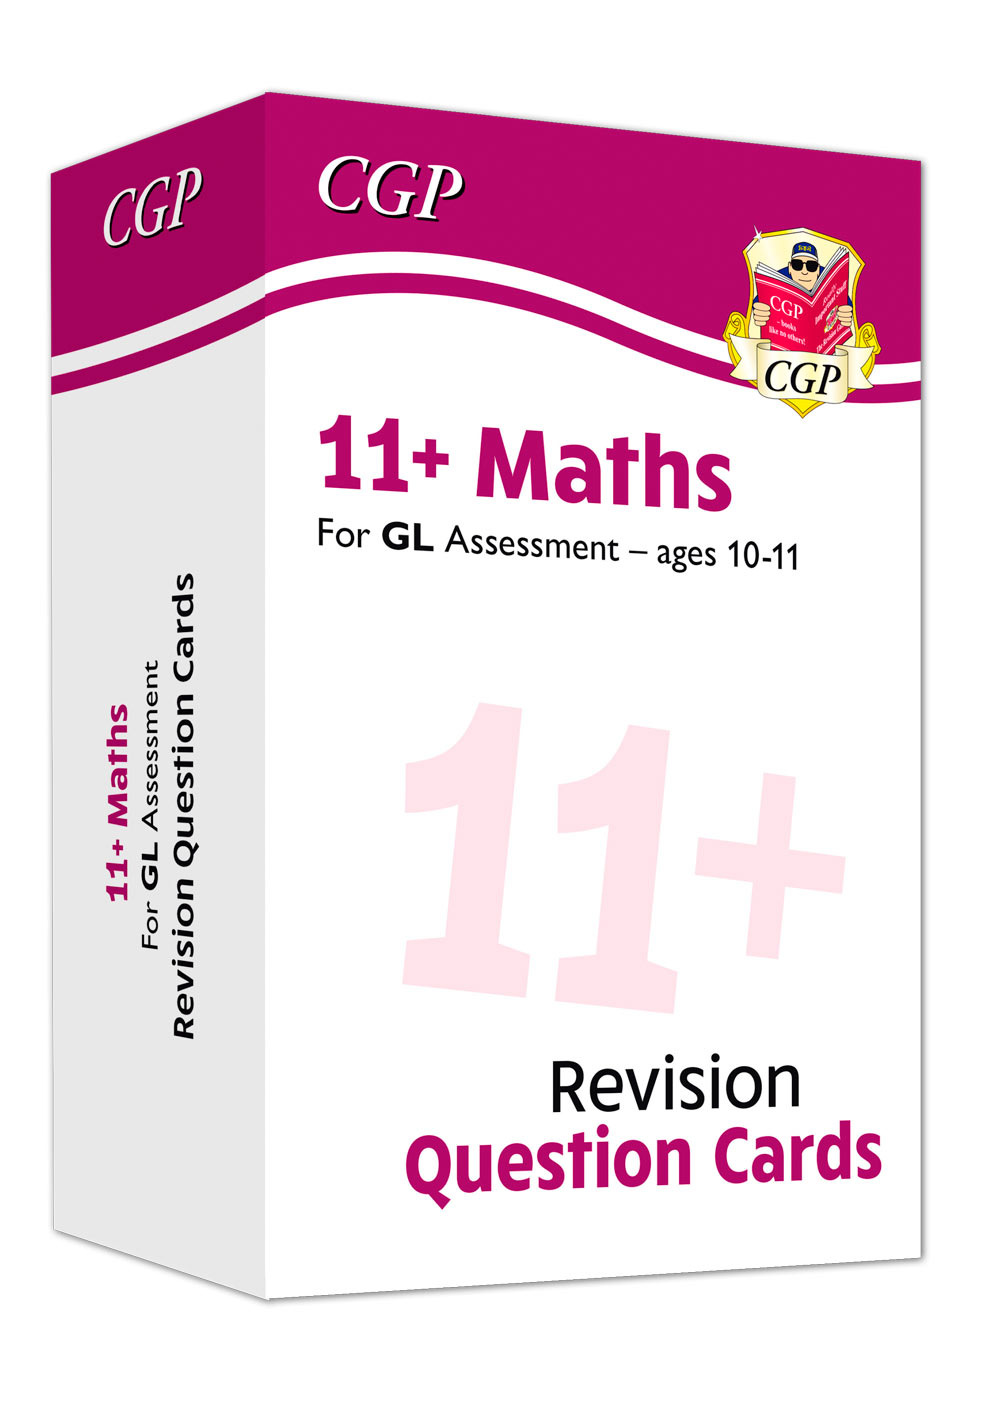 M6FE1 - New 11+ GL Maths Practice Question Cards - Ages 10-11